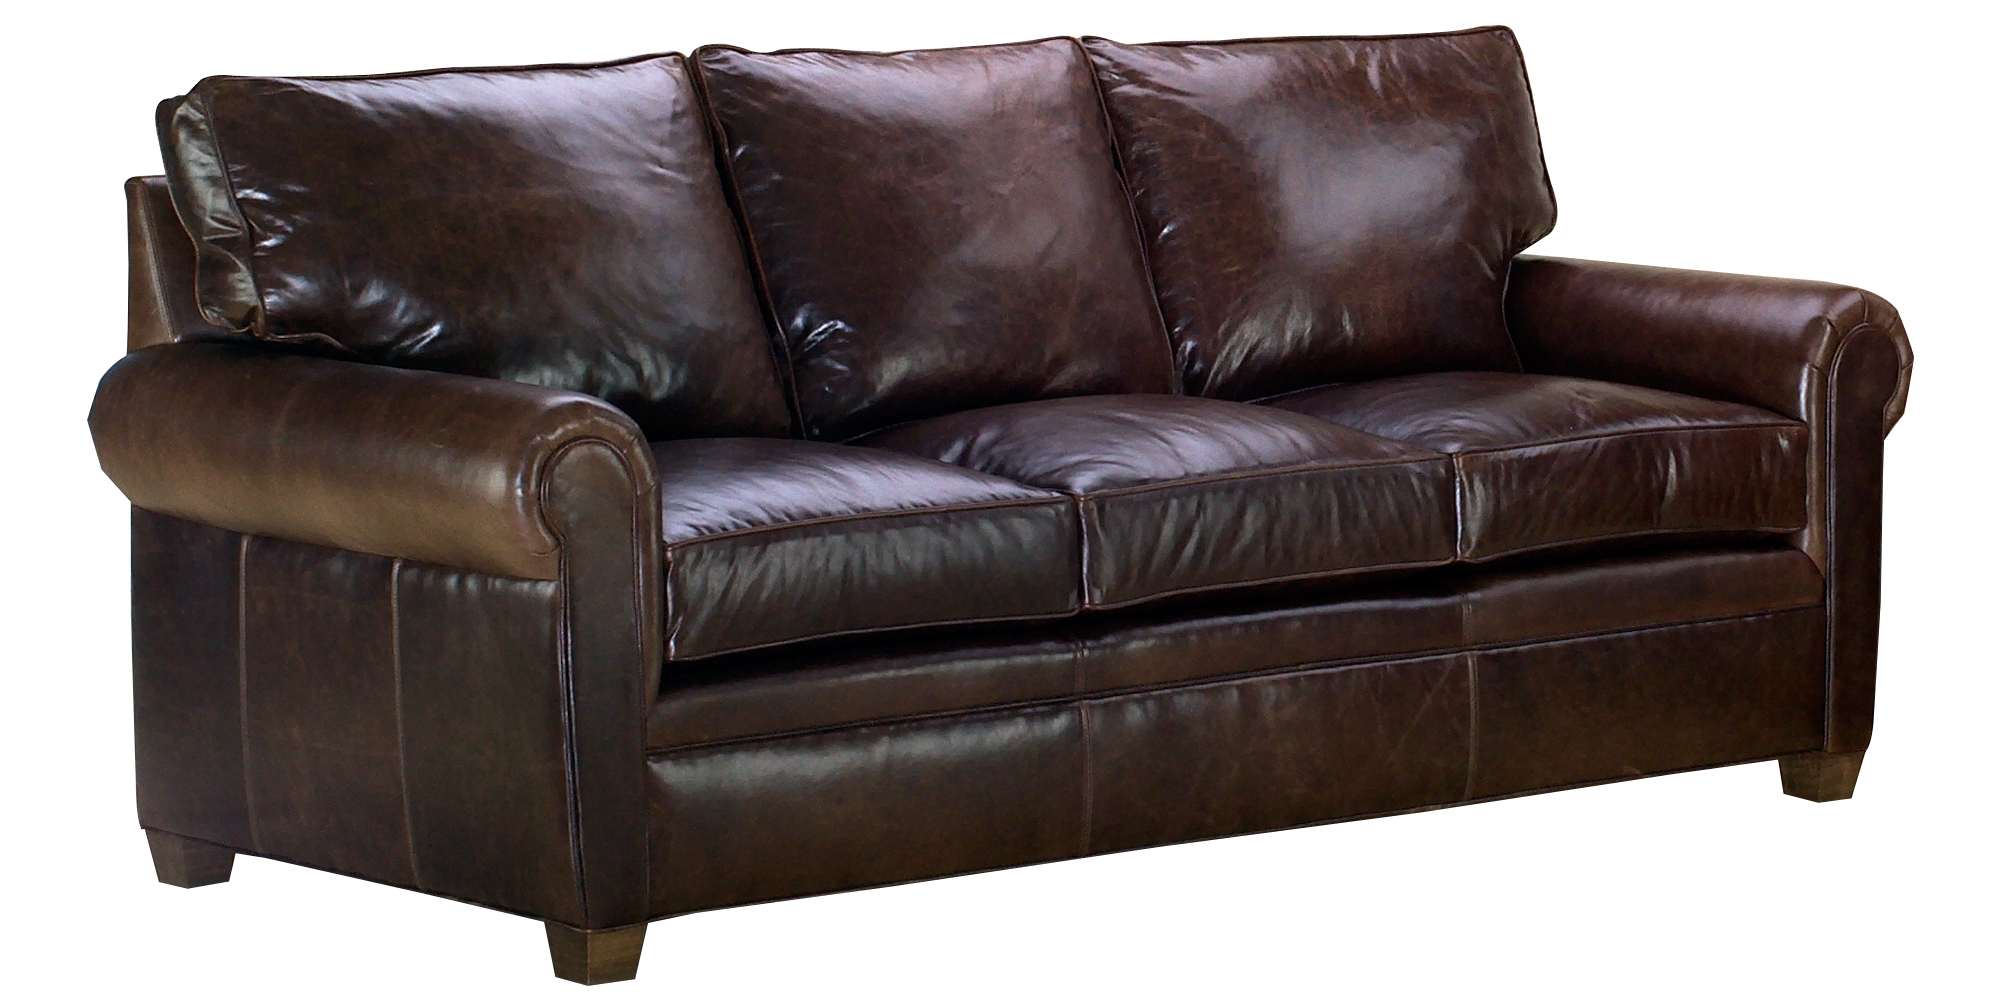 Classic leather sofa set with traditional rolled arms for Leather furniture